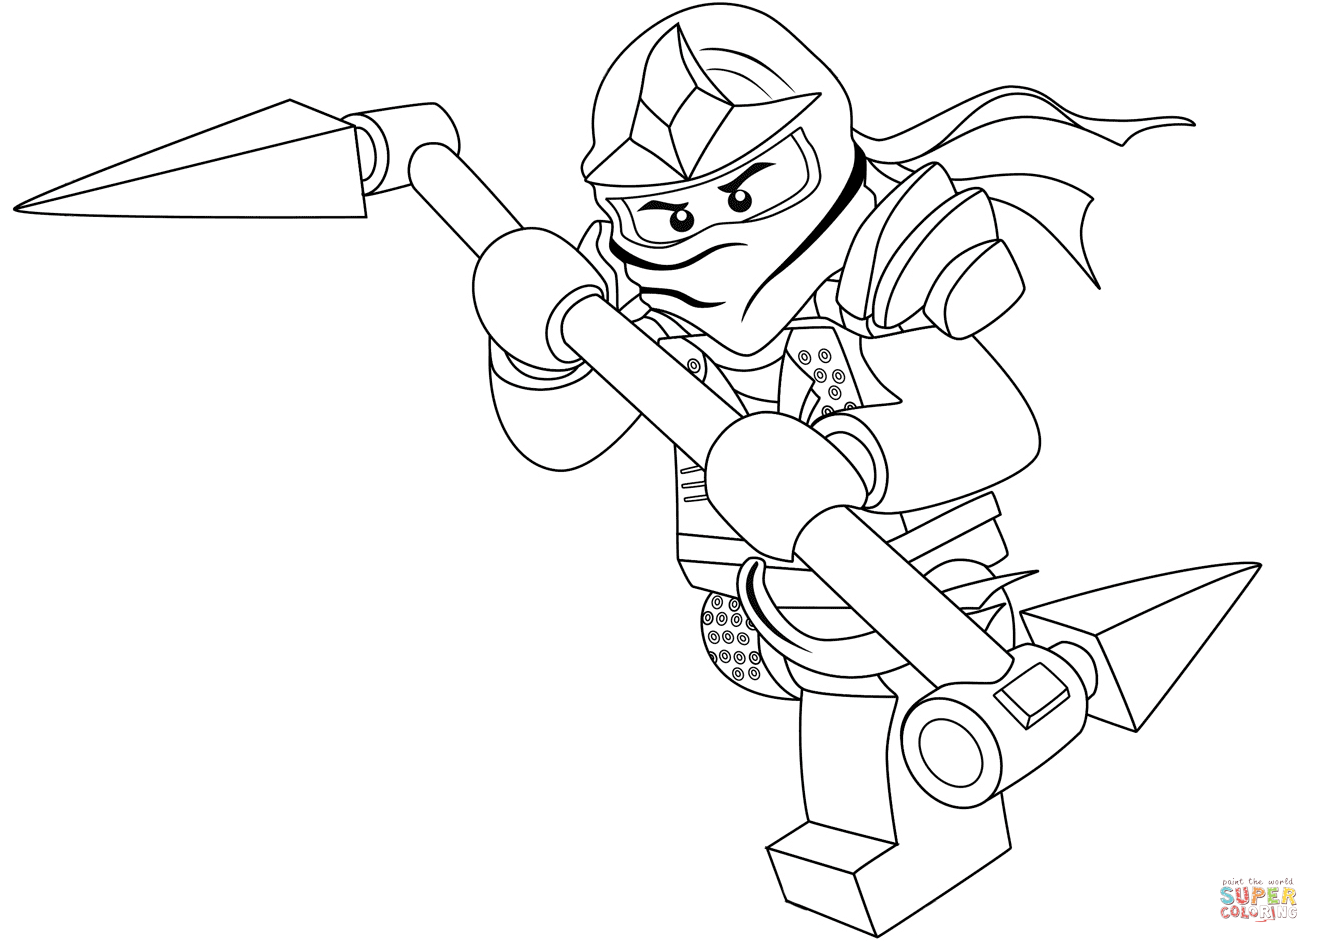 Ninjago Morro Coloring Pages At Getcolorings